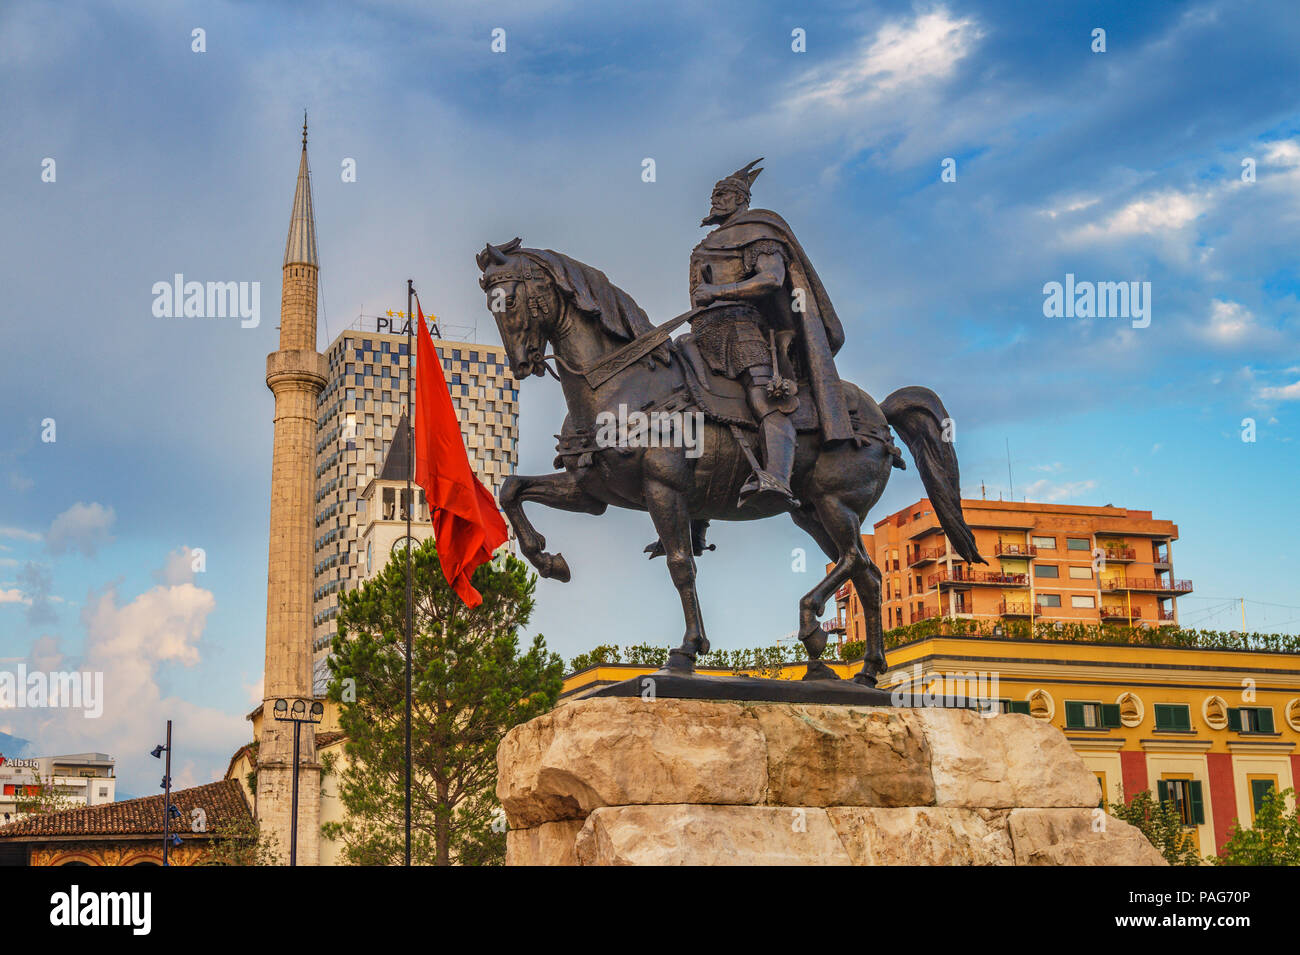 Monument of Skanderbeg in Scanderbeg Square in the center of Tirana city, Albania against a cloudy sky. Tirana is the capital of Albania. - Stock Image